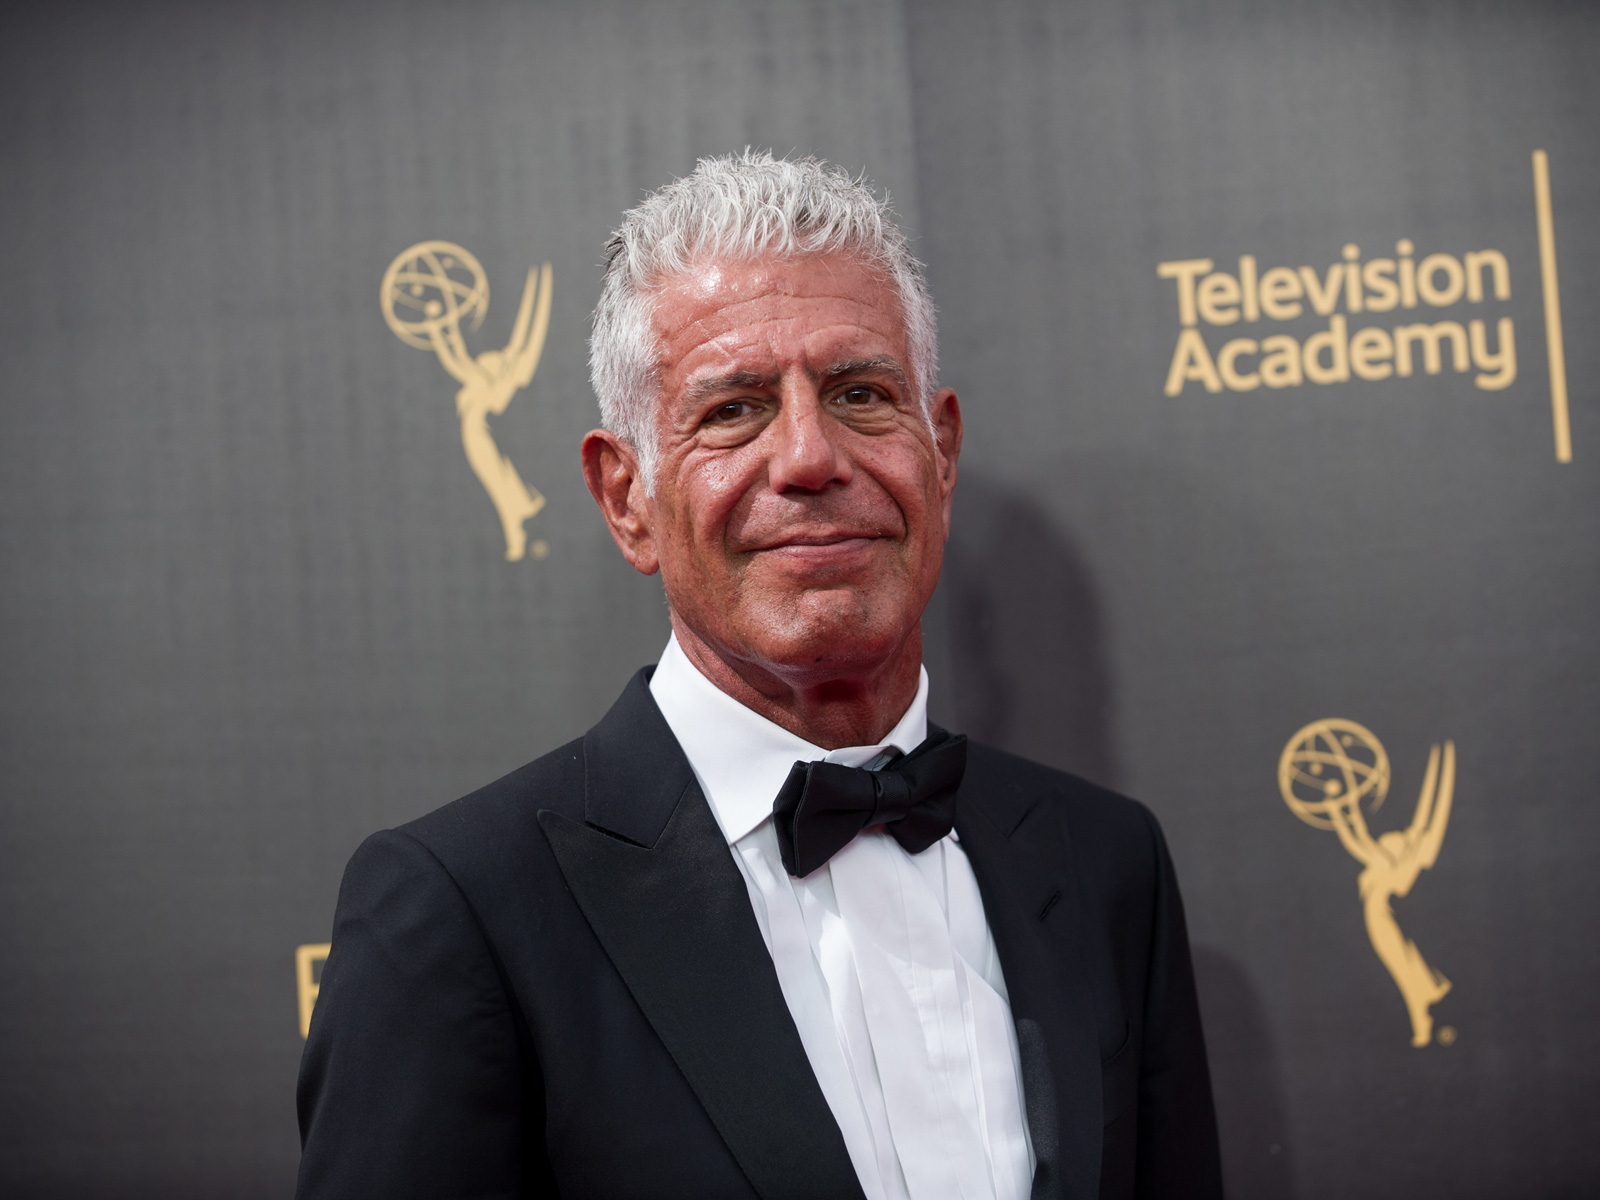 Anthony Bourdain Reflects on the Restaurant Industry's 'Meathead Culture' After John Besh Allegations